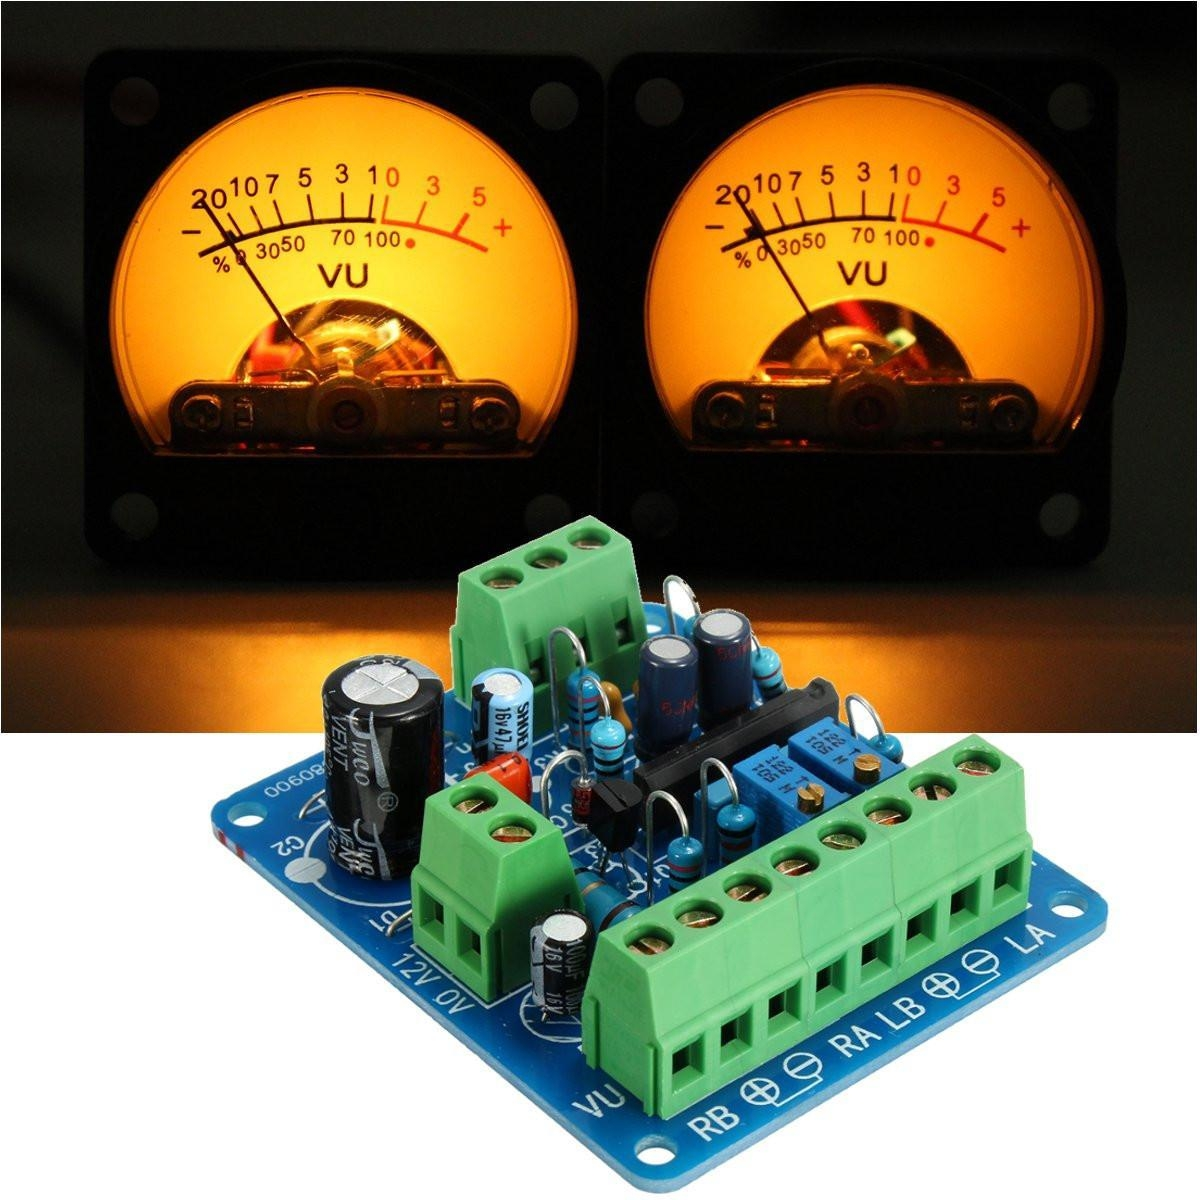 Buy Generic Audio Level Amp Driver Board With Two Vu Meter Best 3 Image